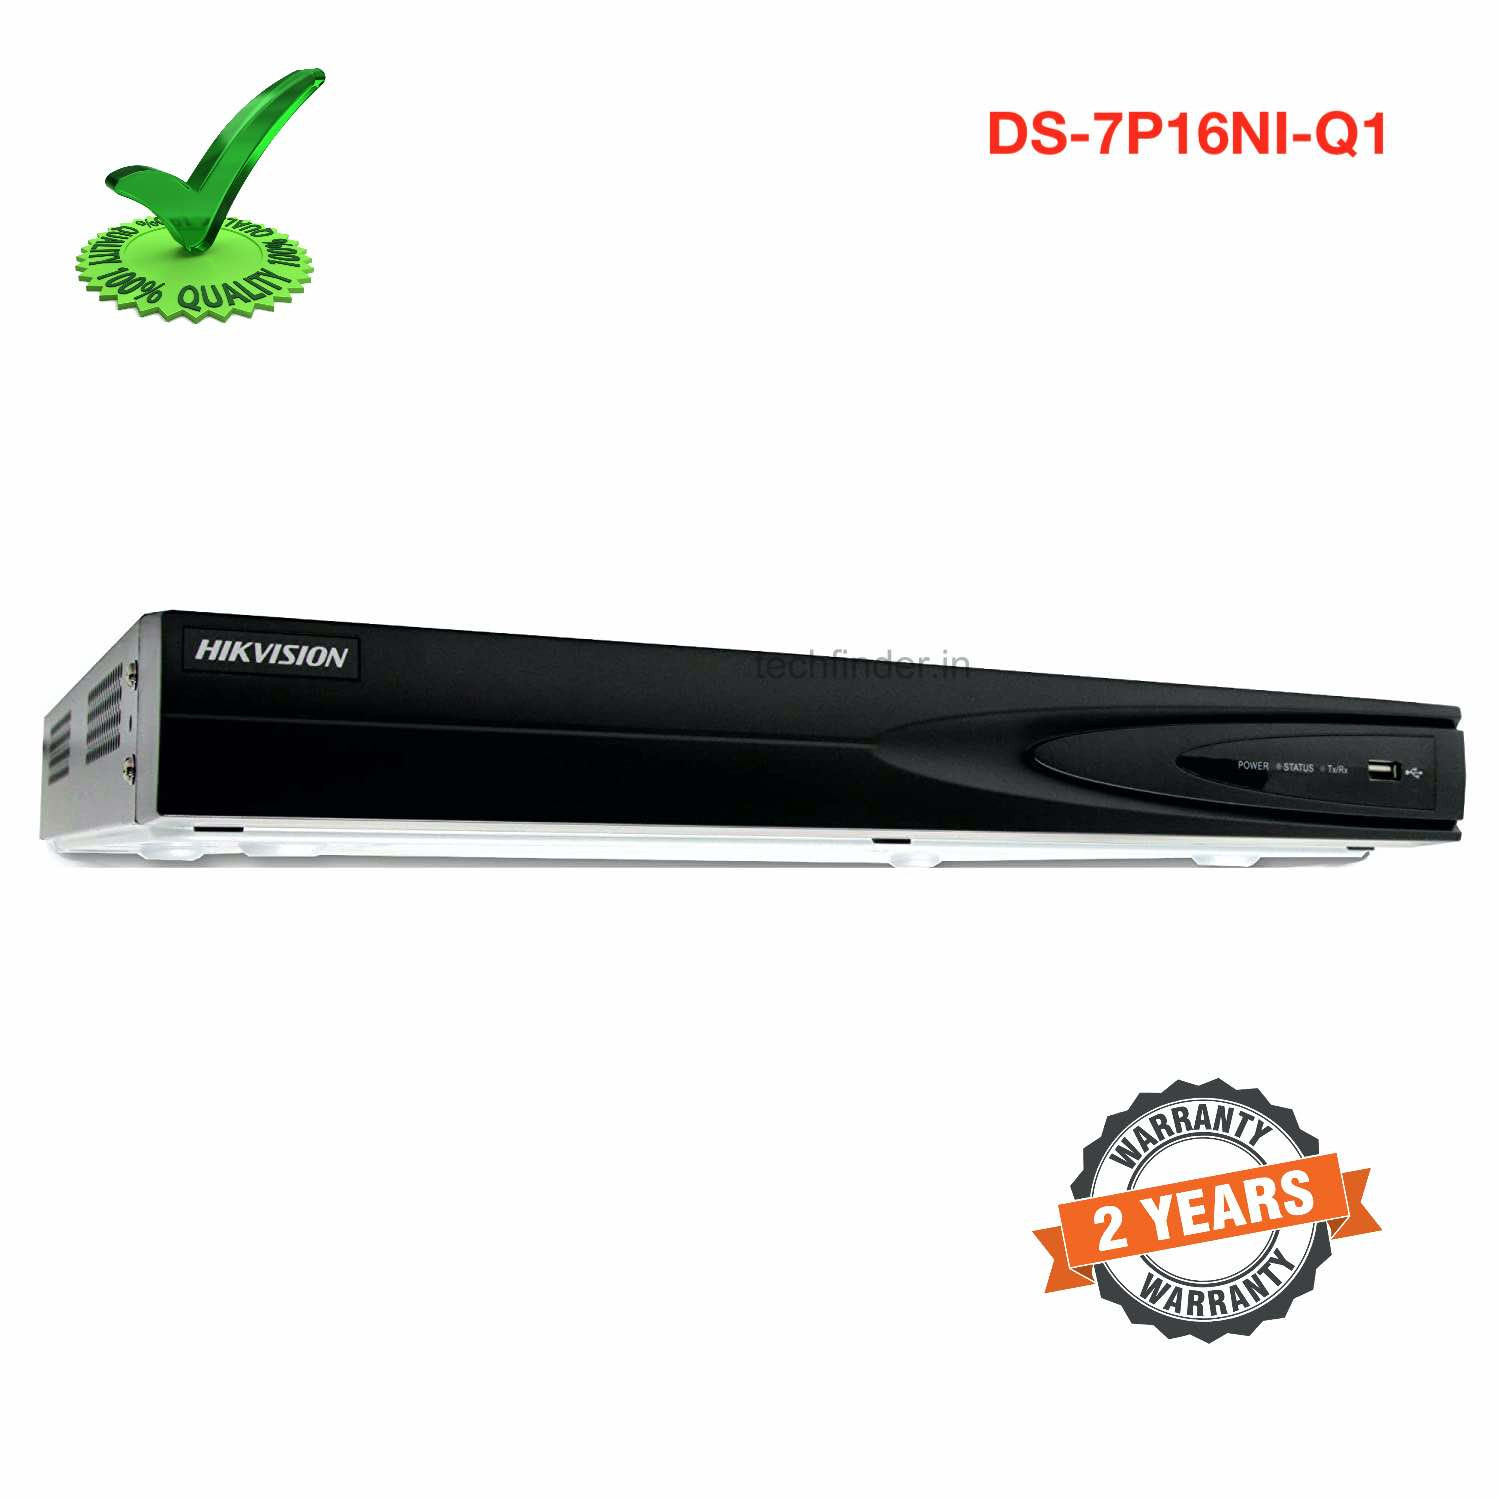 Hikvision DS-7P16NI-Q1 Hdmi 16ch Support 4k Nvr